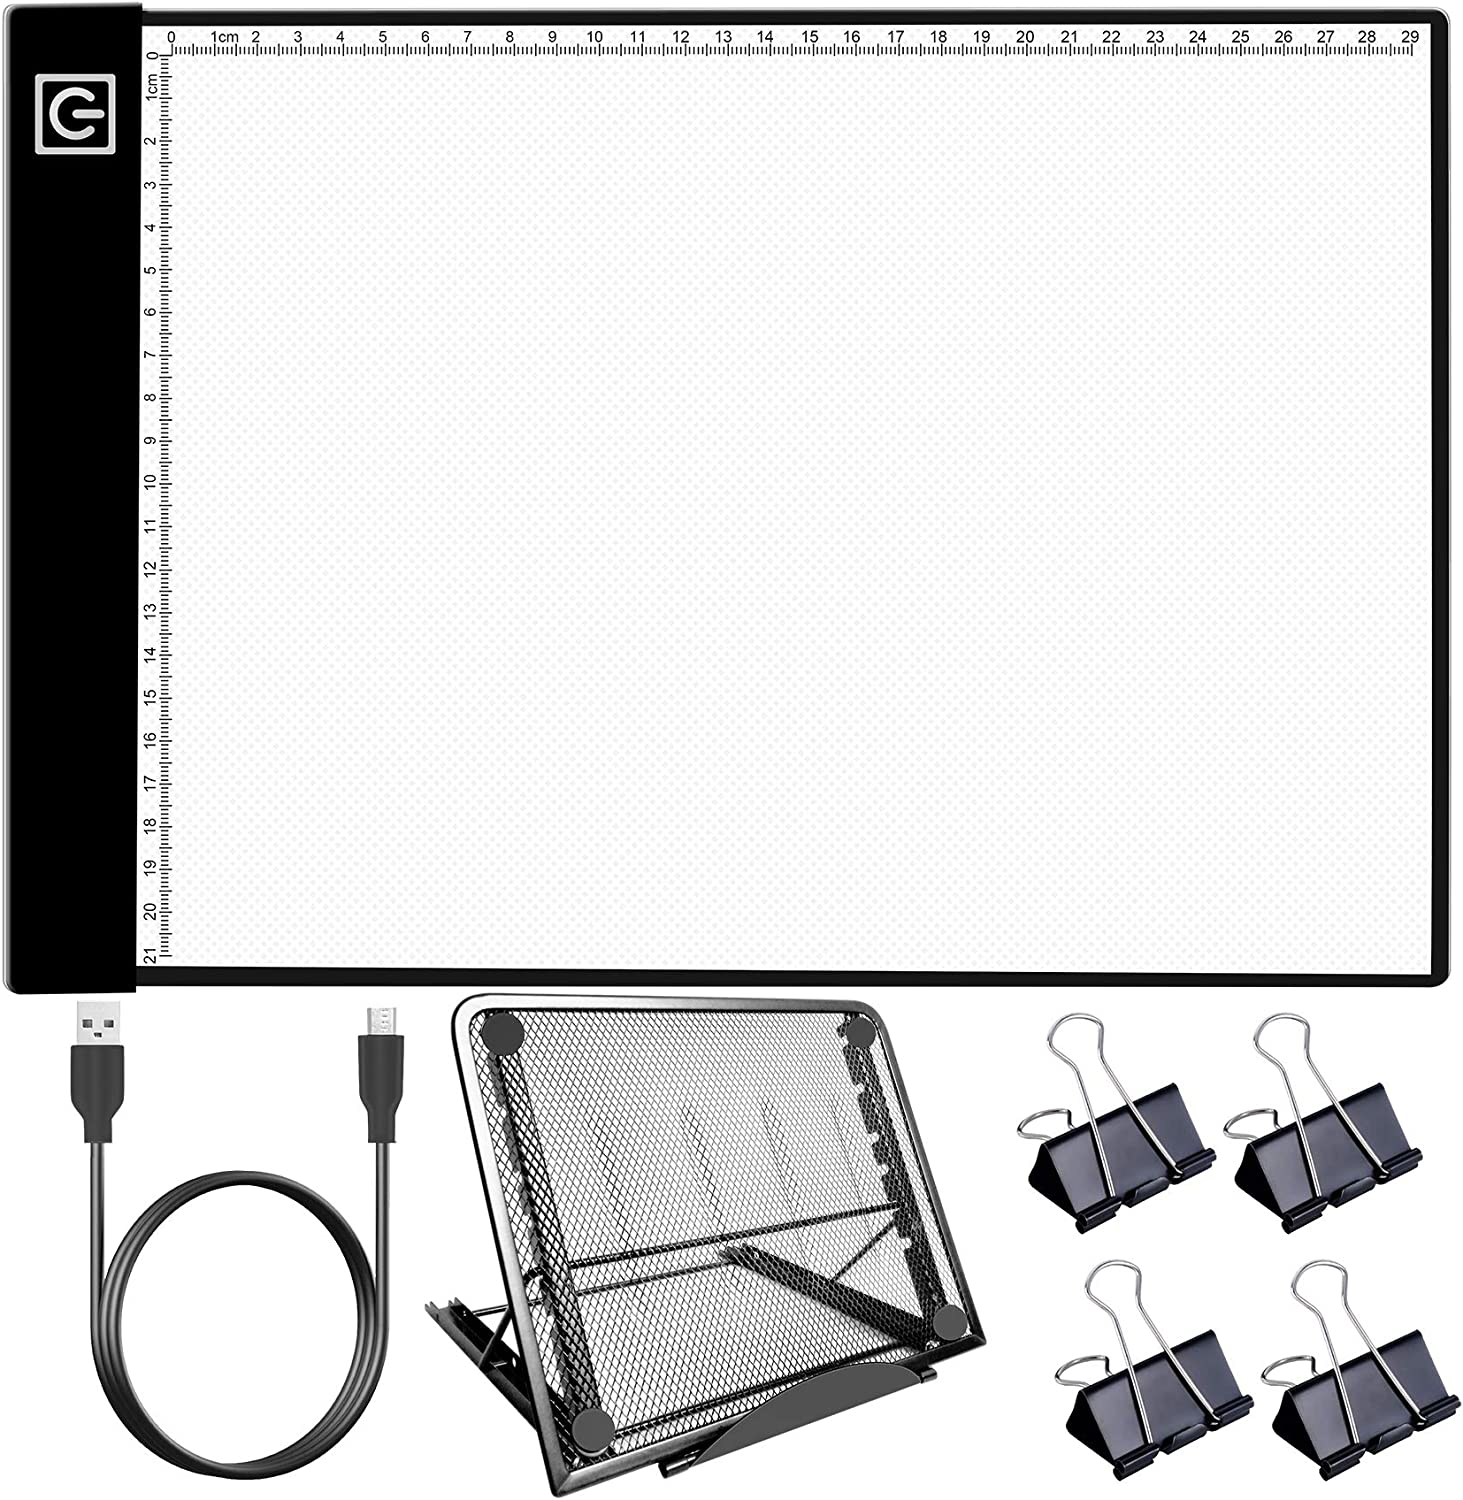 HIRALIY Diamond Painting Light Pad Kit with Metal Stand, A4 LED Light Box USB Powered Dimmable Tracing Light Board with 4 Fasten Clips for Easy Vinyl Weeding,Tracing,Drawing